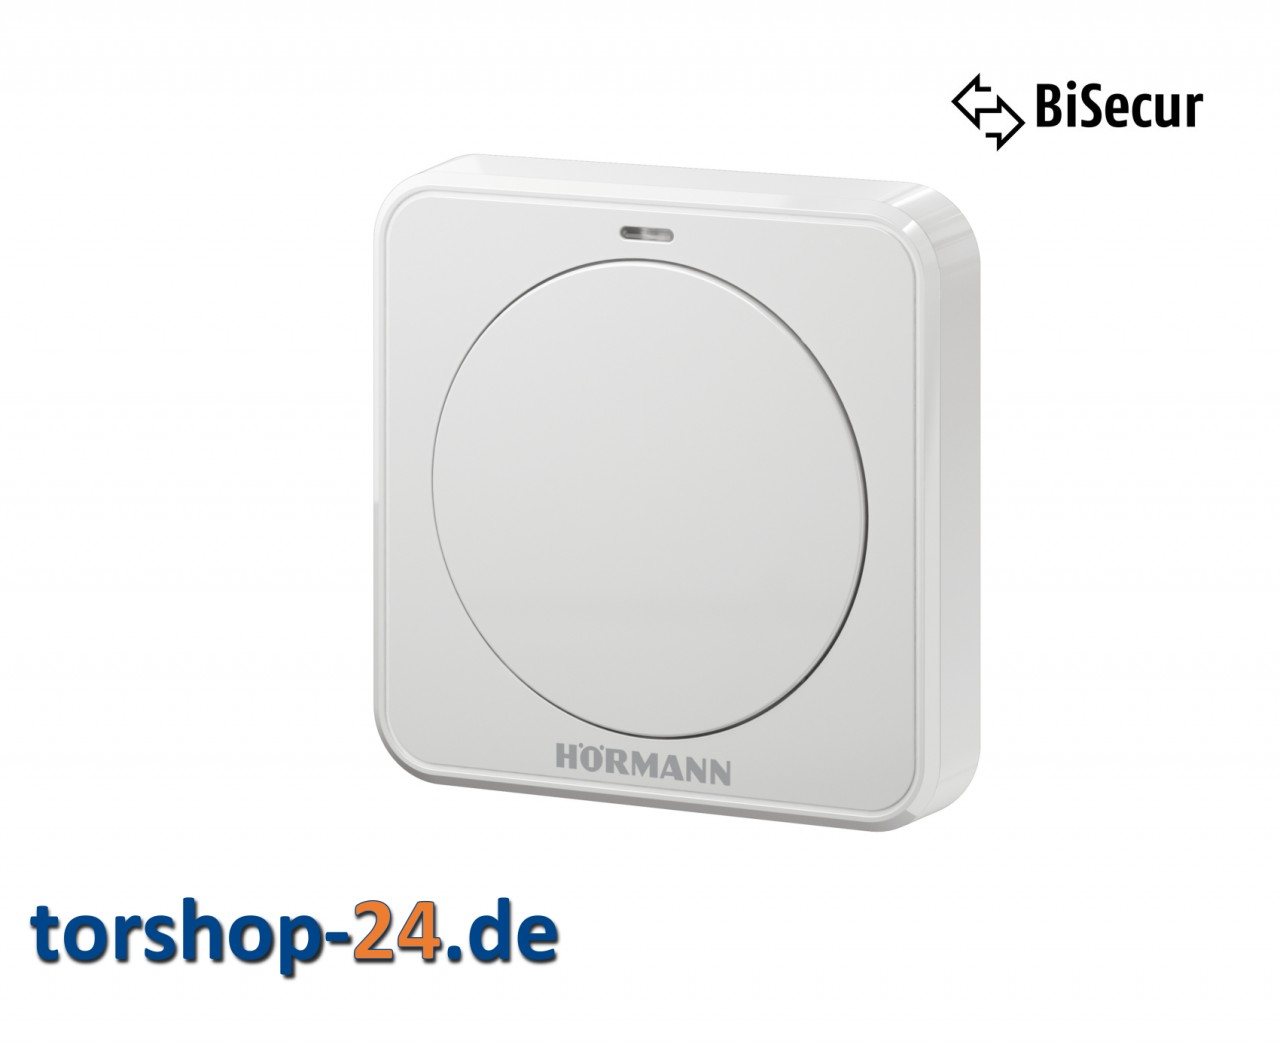 Hormann Wireless Push Button FIT 1 BS Smart Home BiSecur